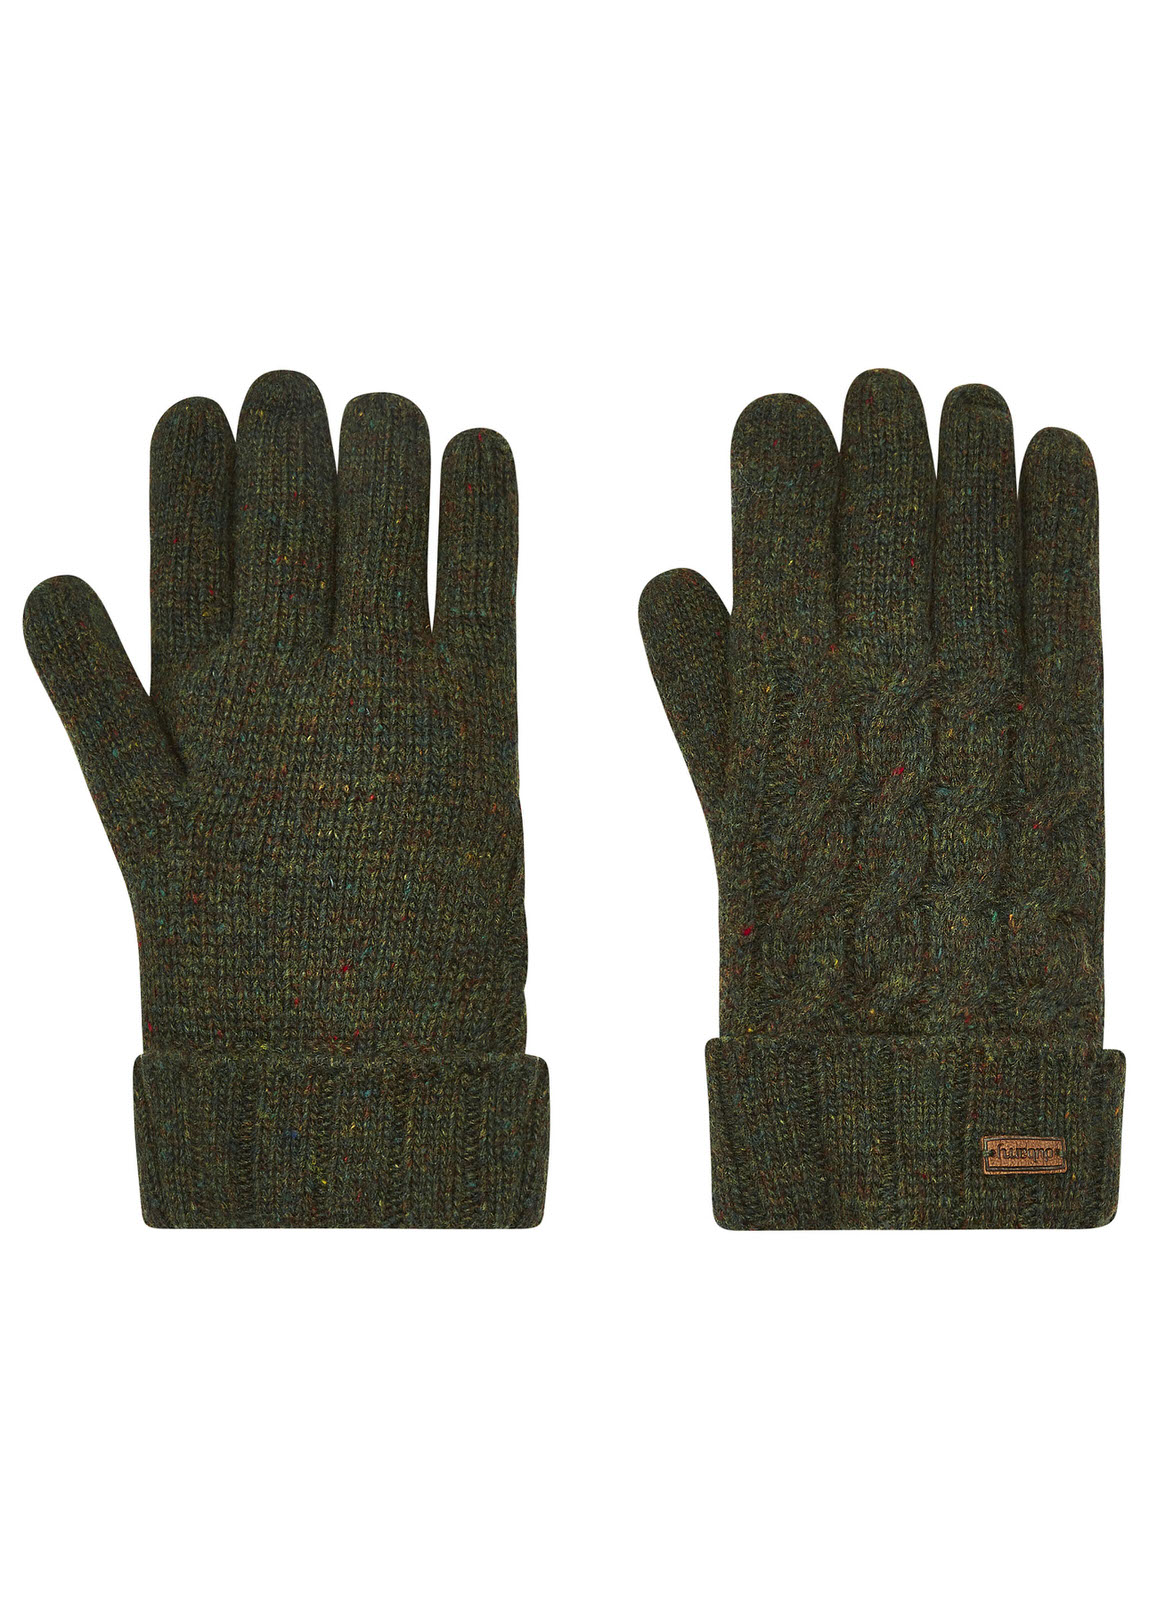 Buckley_Knitted_Gloves_Olive_Image_1